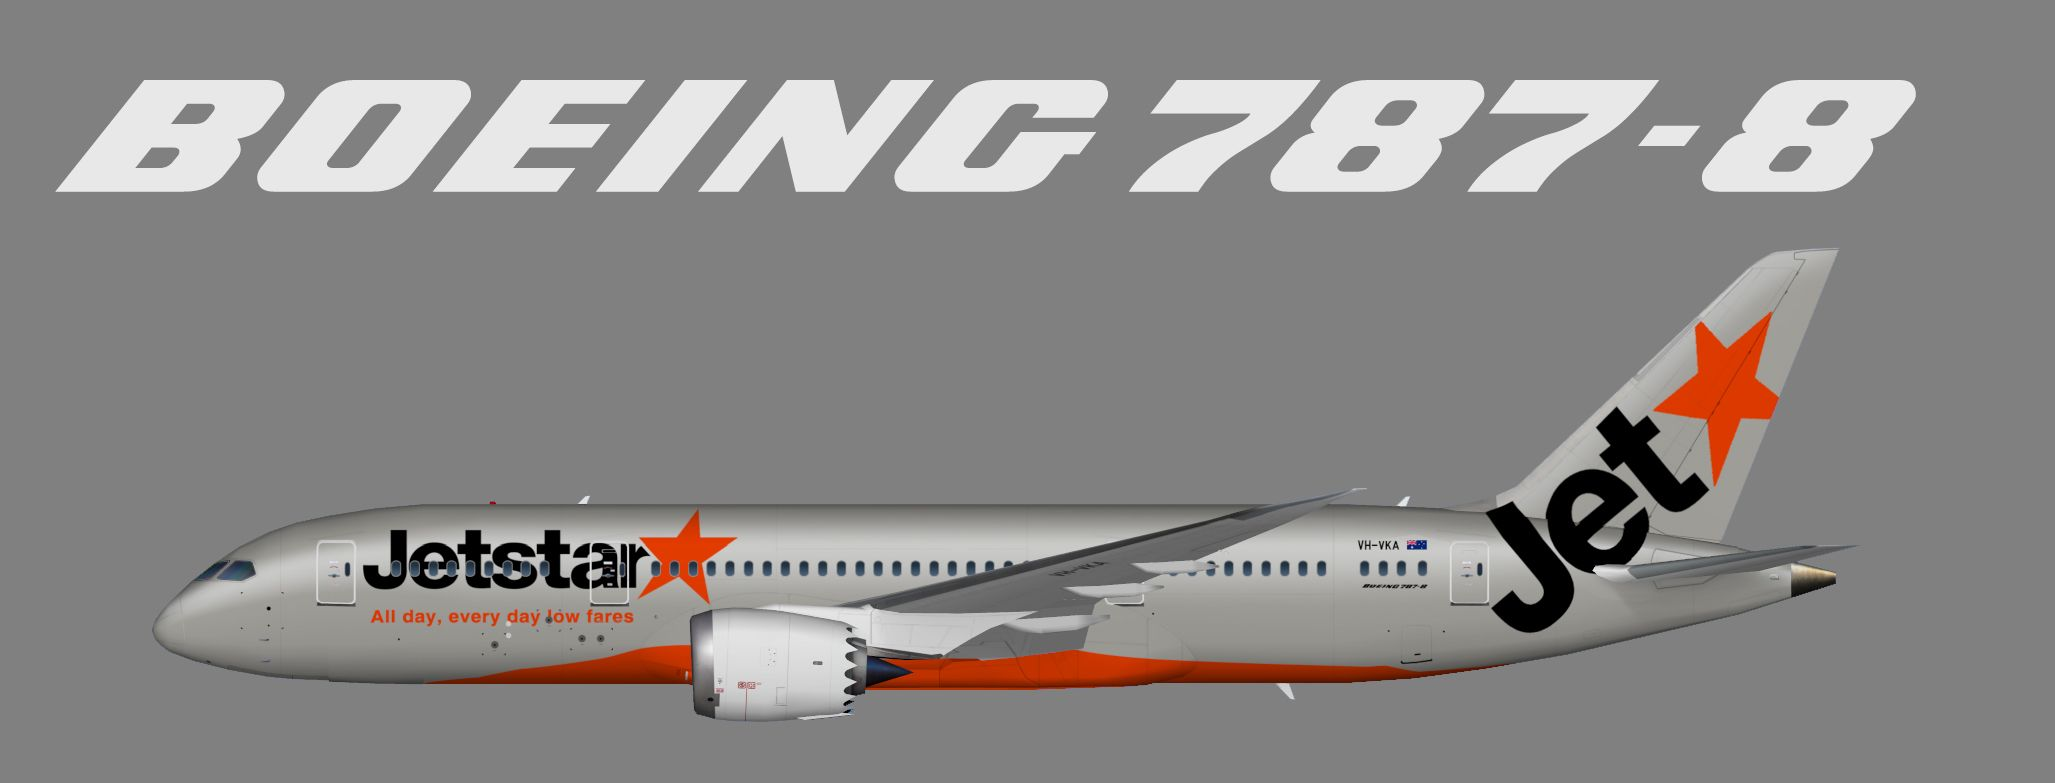 Boeing 787 dreamliner wings gifsanimate aviation trb 44 boeing 787 dreamliner wings gifsanimate aviation trb 44 pinterest boeing 787 dreamliner aviation and airplanes fandeluxe Image collections